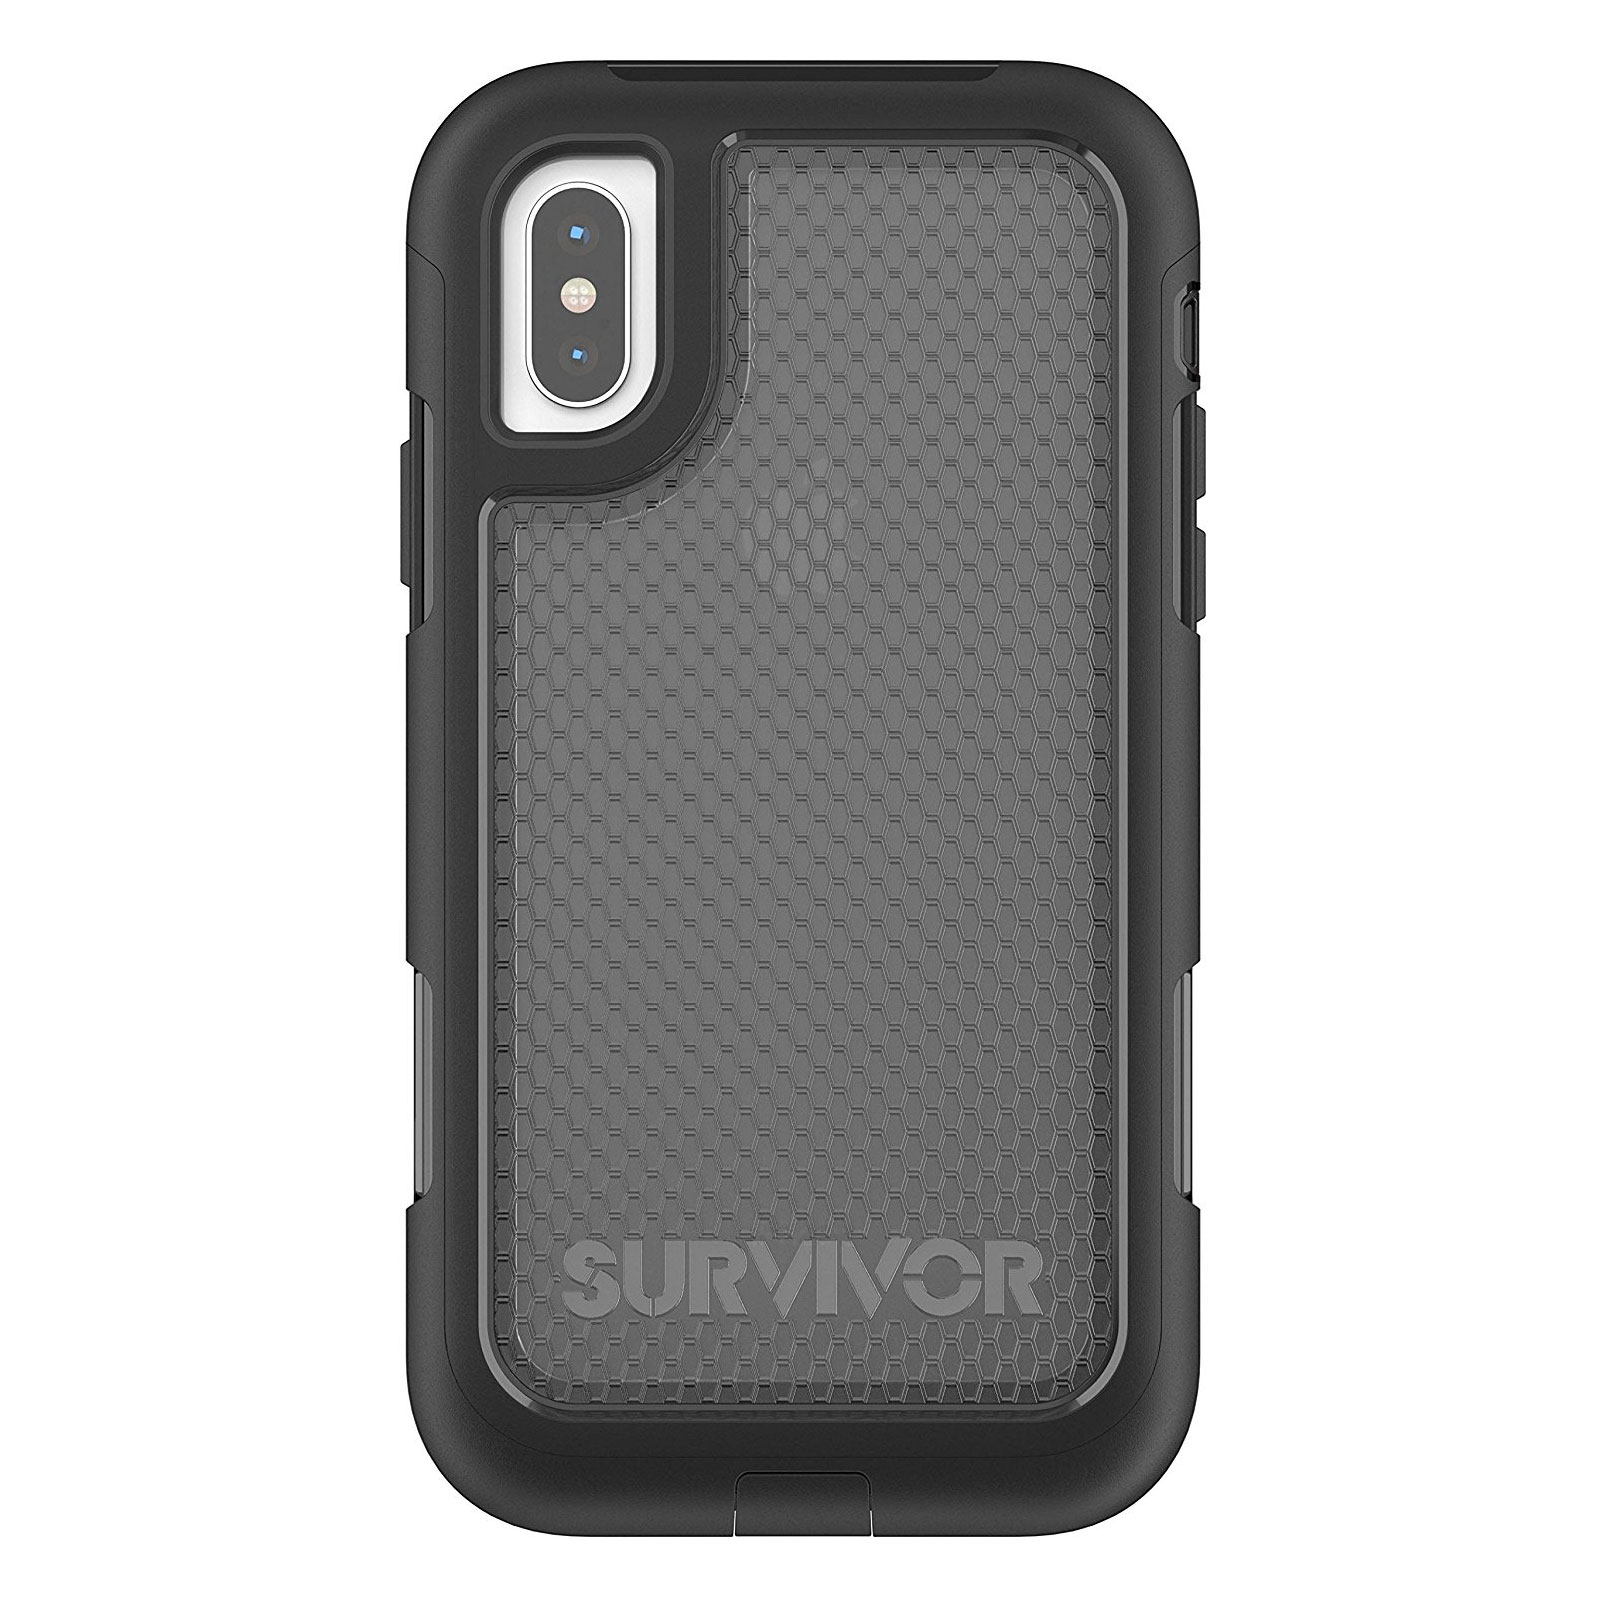 coque iphone 8 plus survivor extreme